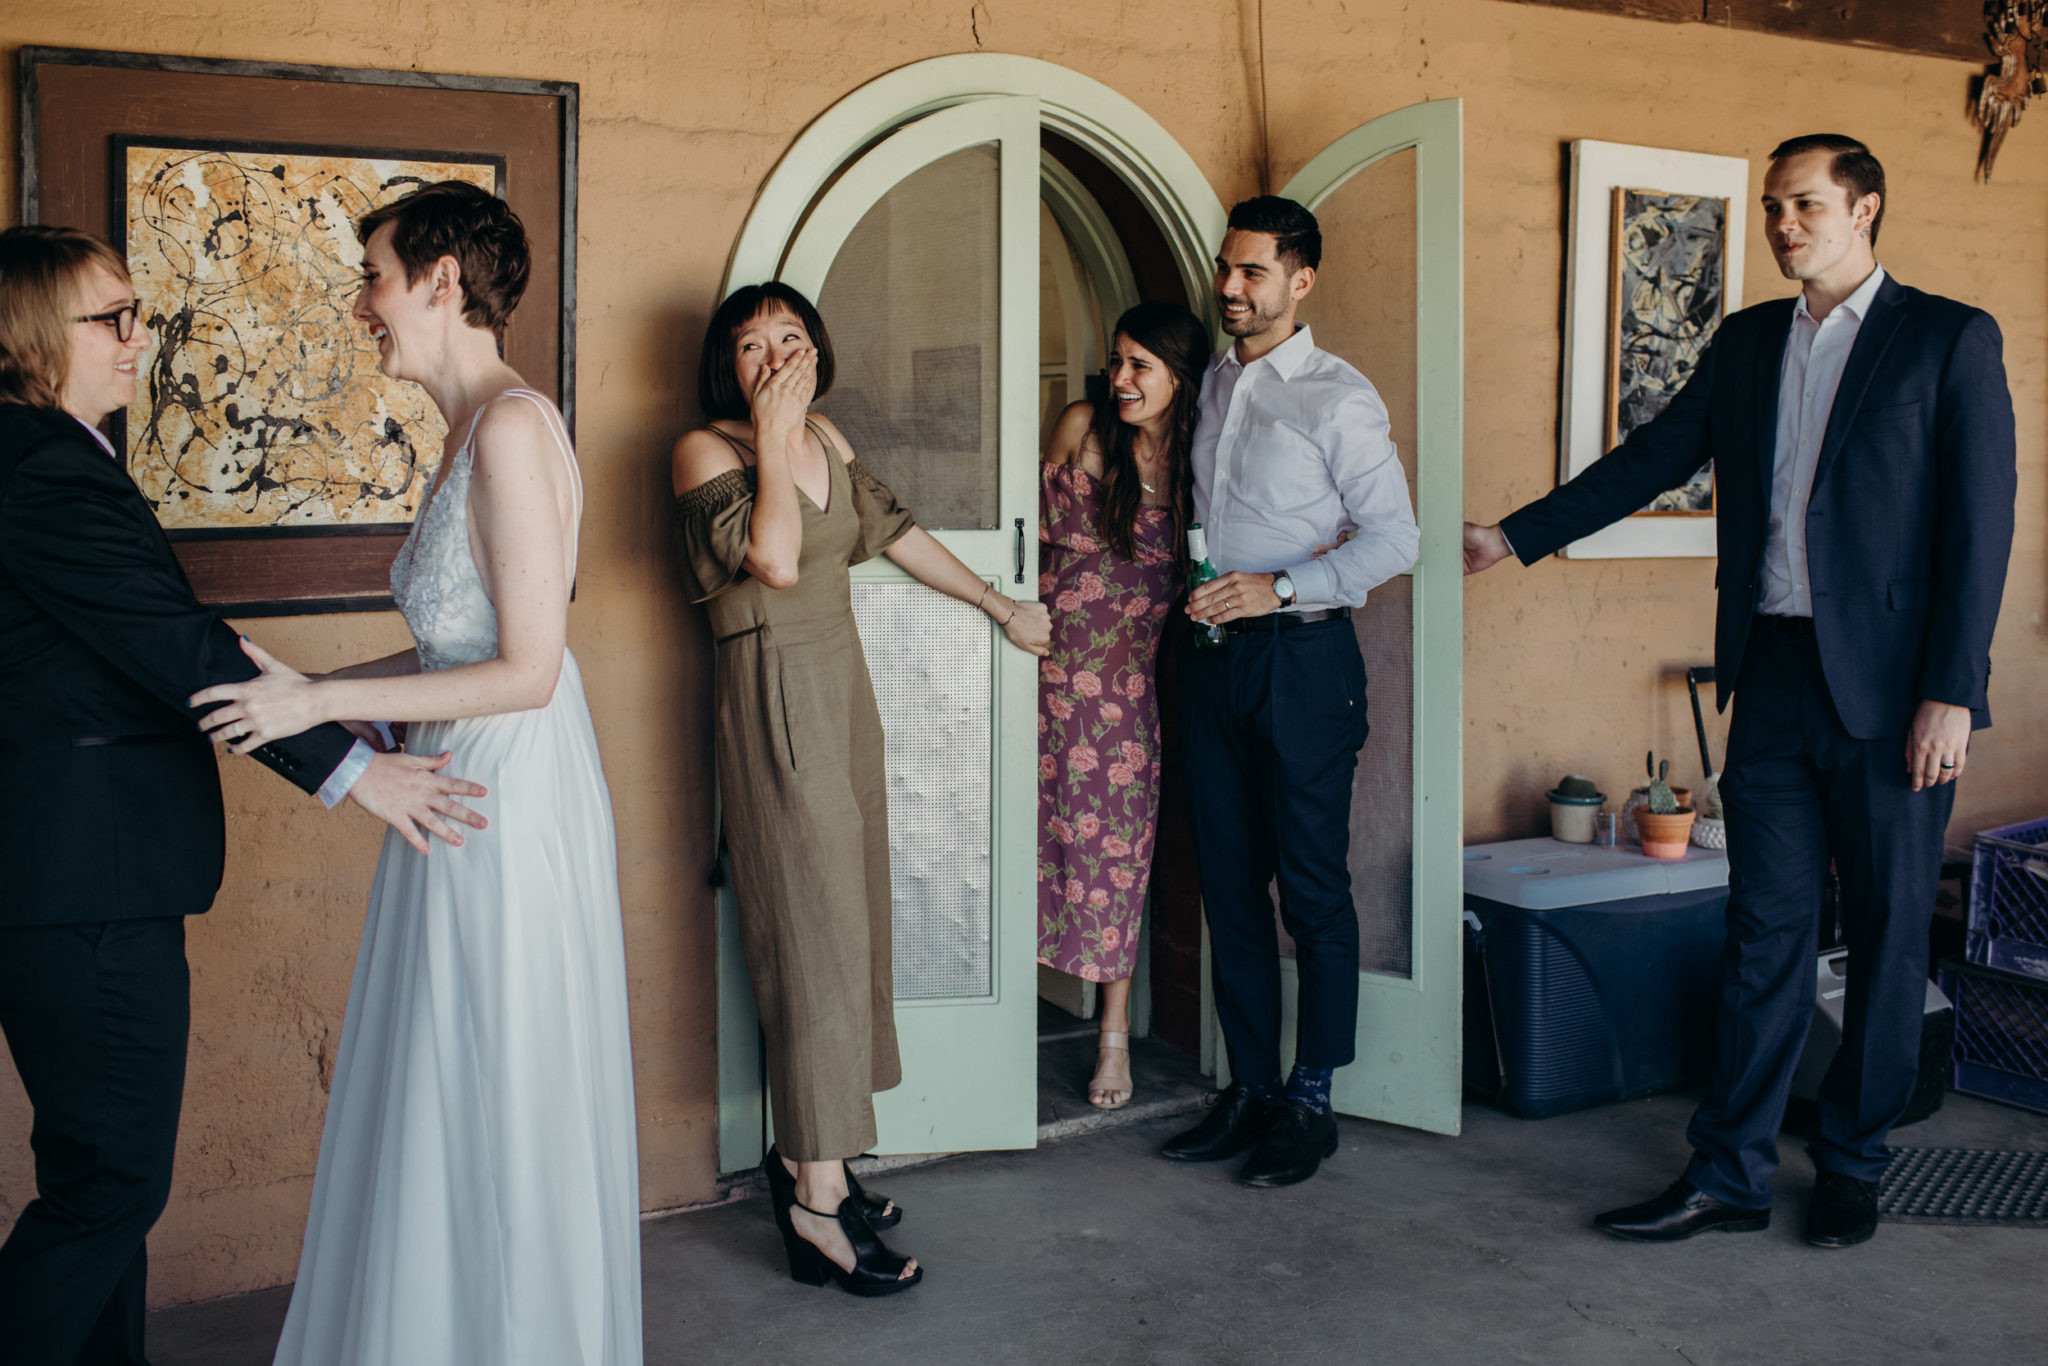 The reaction of several guests to a queer wedding couple experiencing their first look is documented in a photo by Betty Clicker